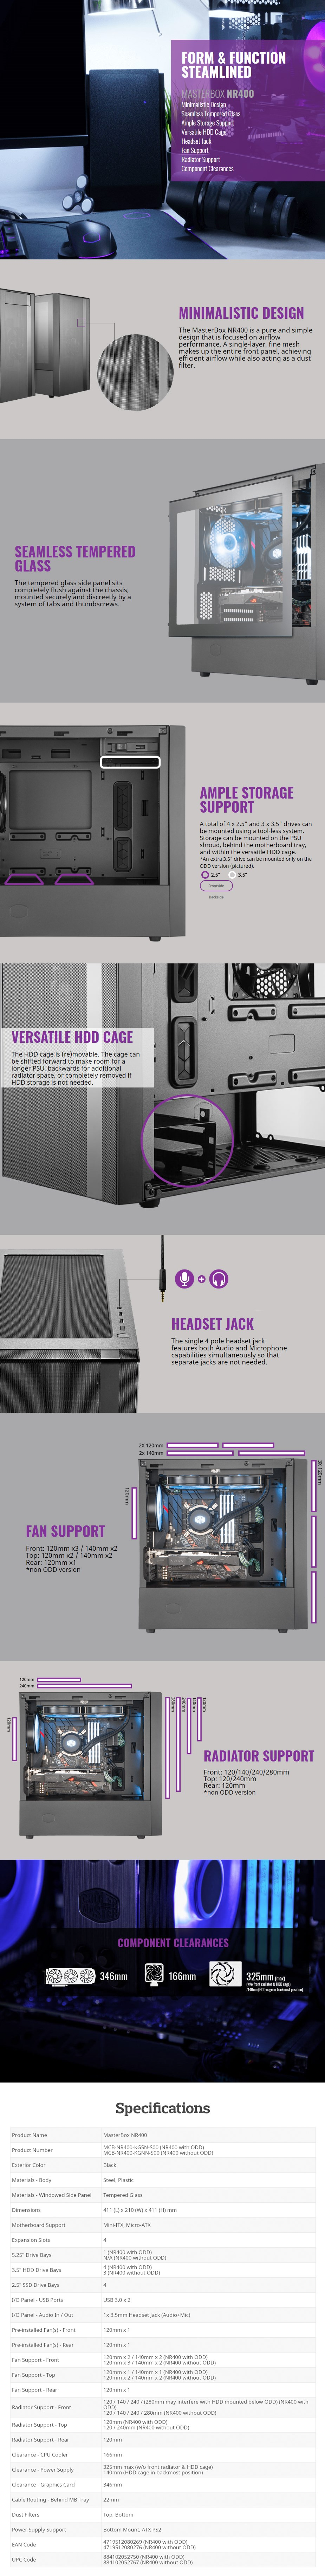 Cooler Master MasterBox NR400 Tempered Glass Mid-Tower Micro-ATX Case - Desktop Overview 1